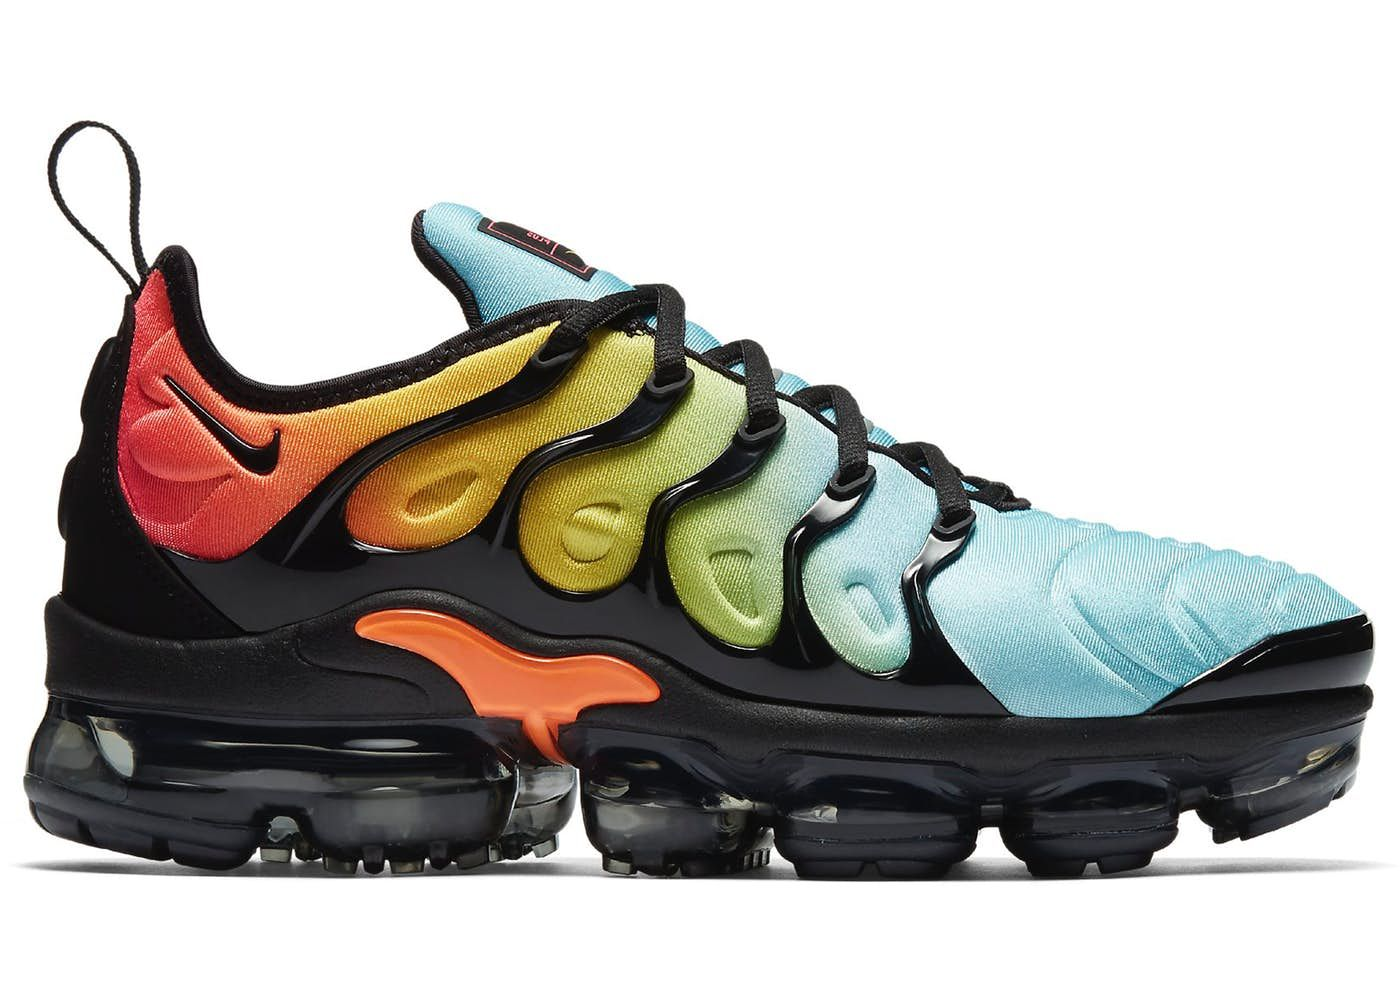 nike rainbow reflective tn ultra plus anthracite (exclusive limited edition)